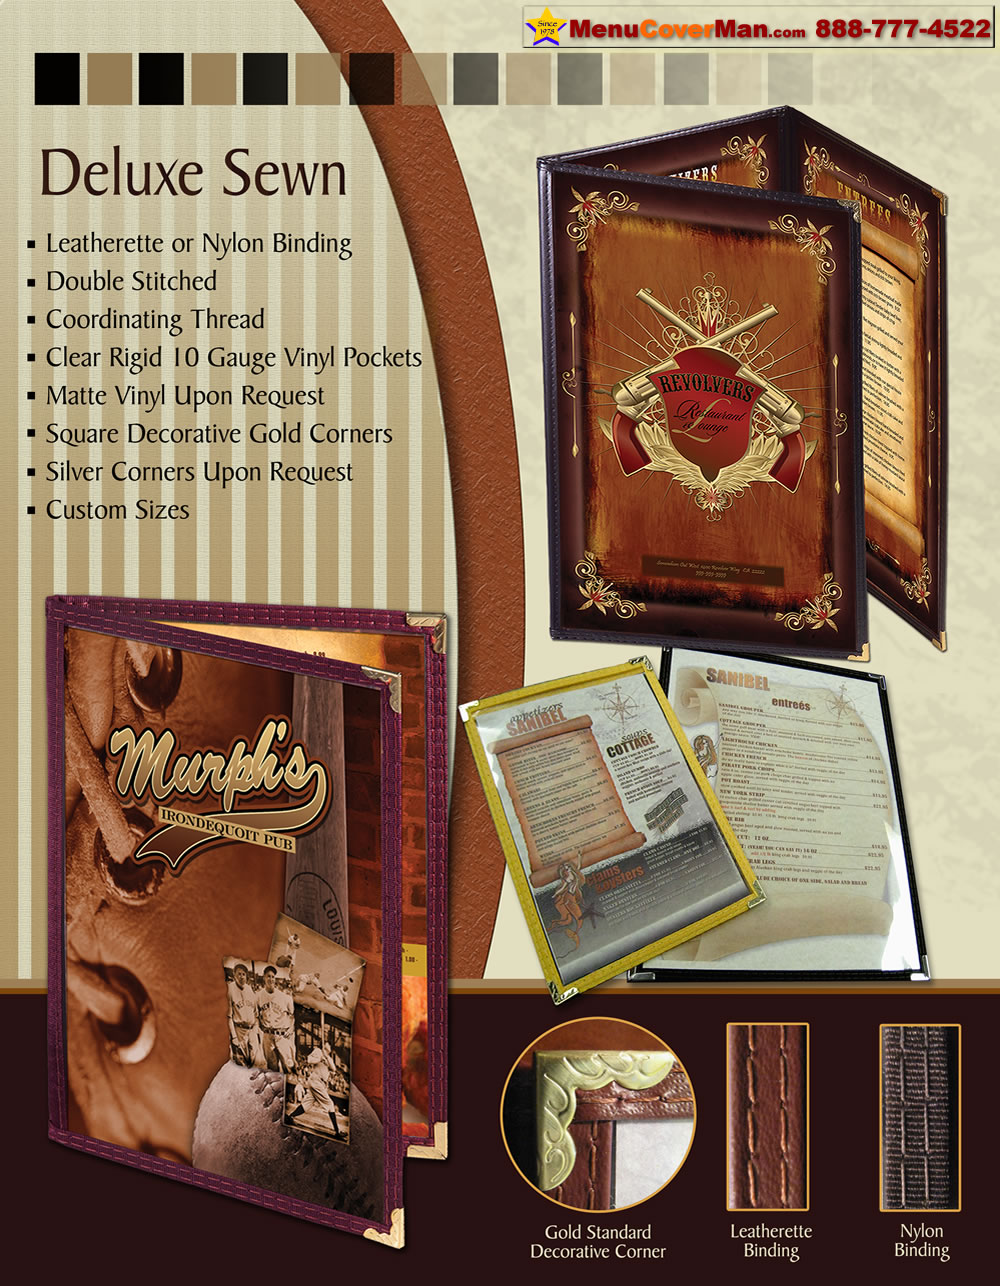 Picture of Menucoverman.com #DS-LEA-TES-11X17 - Deluxe Sewn Menu Covers - 1 Pocket - 2 View